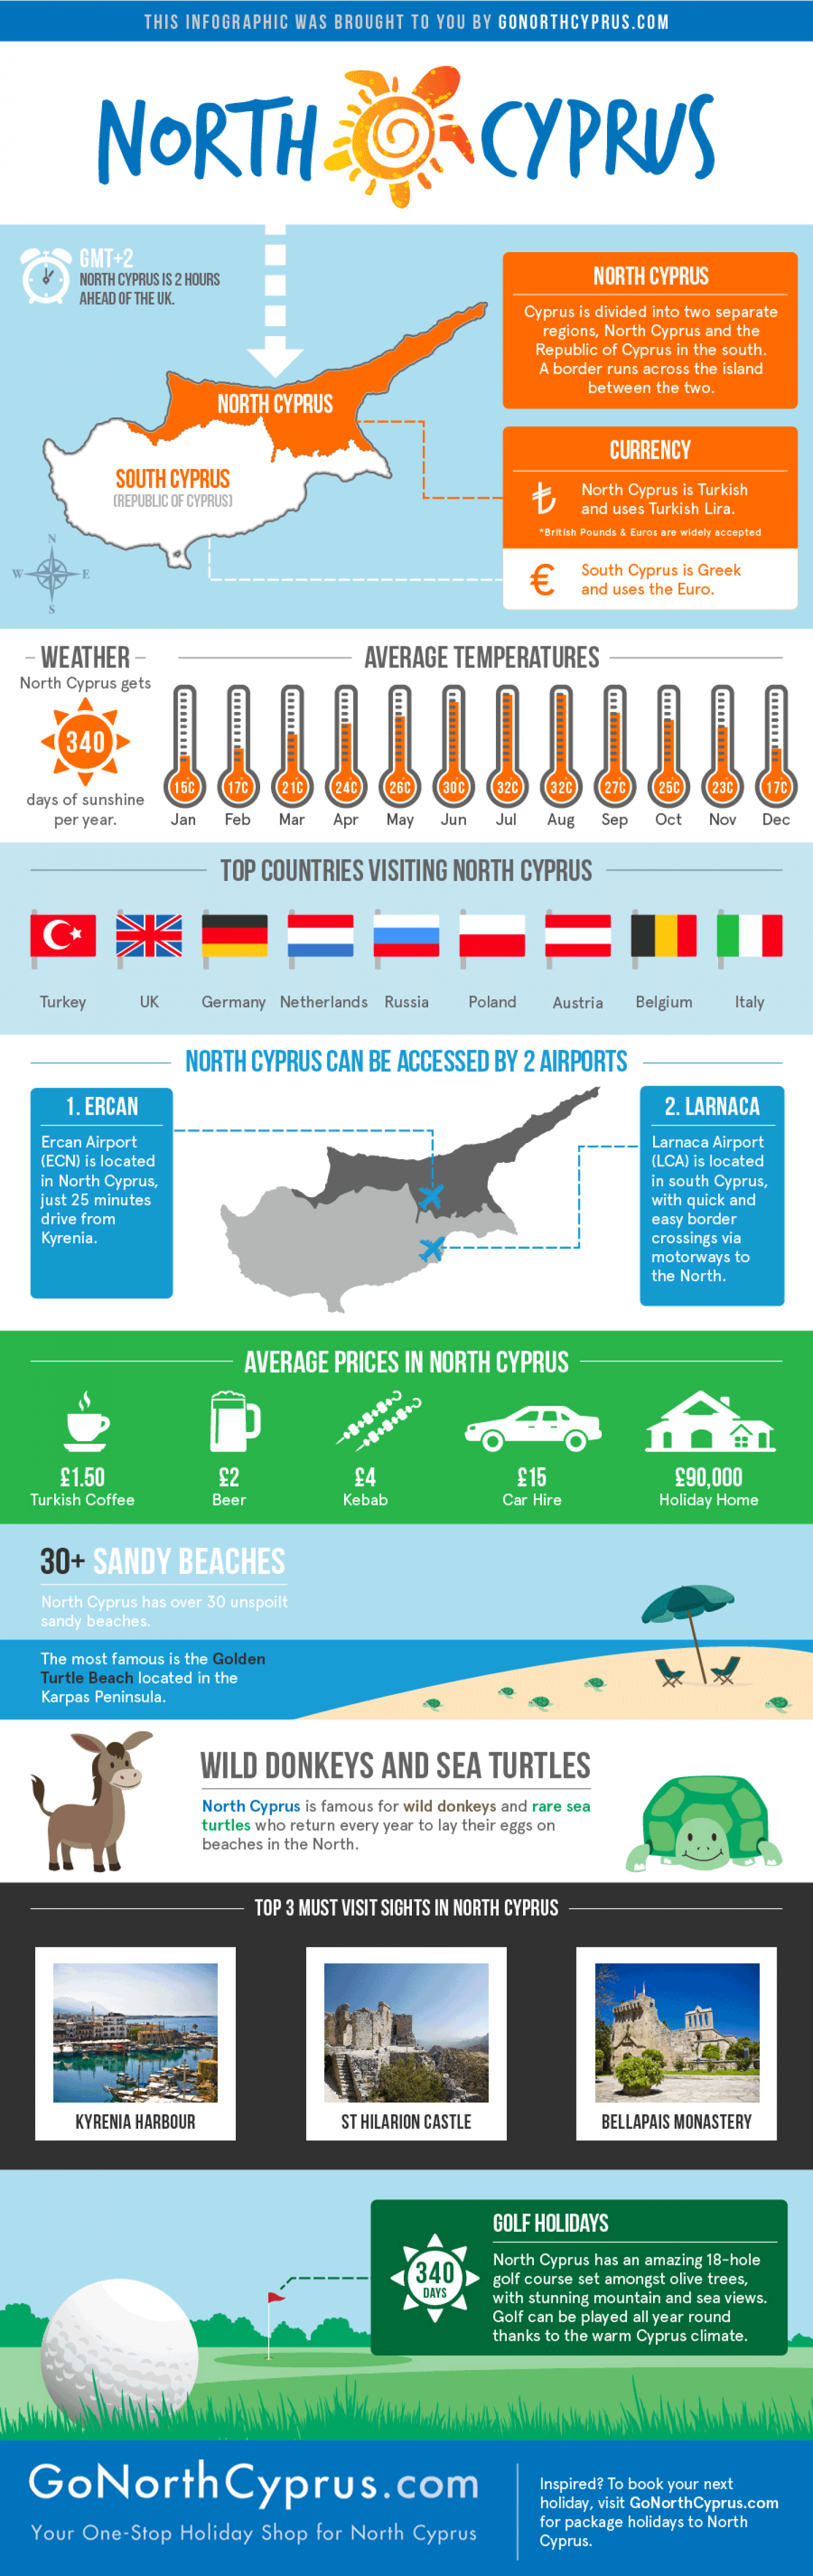 North Cyprus Infographic